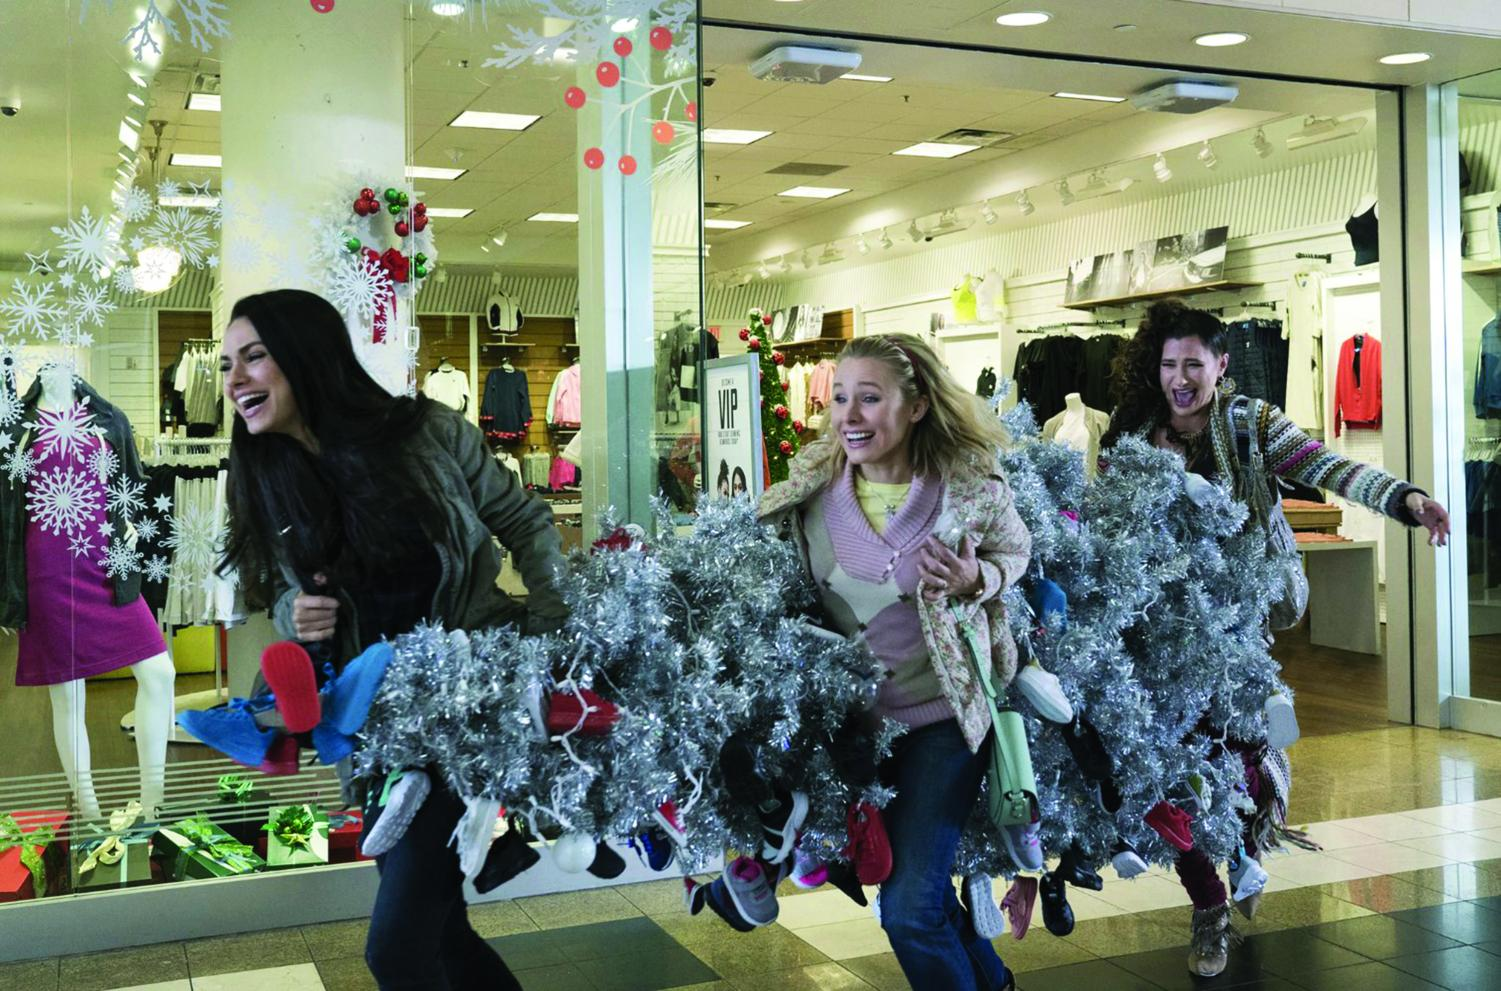 Mila Kunis, from left, Kristen Bell and Kathryn Hahn decide to do the holidays their own way in